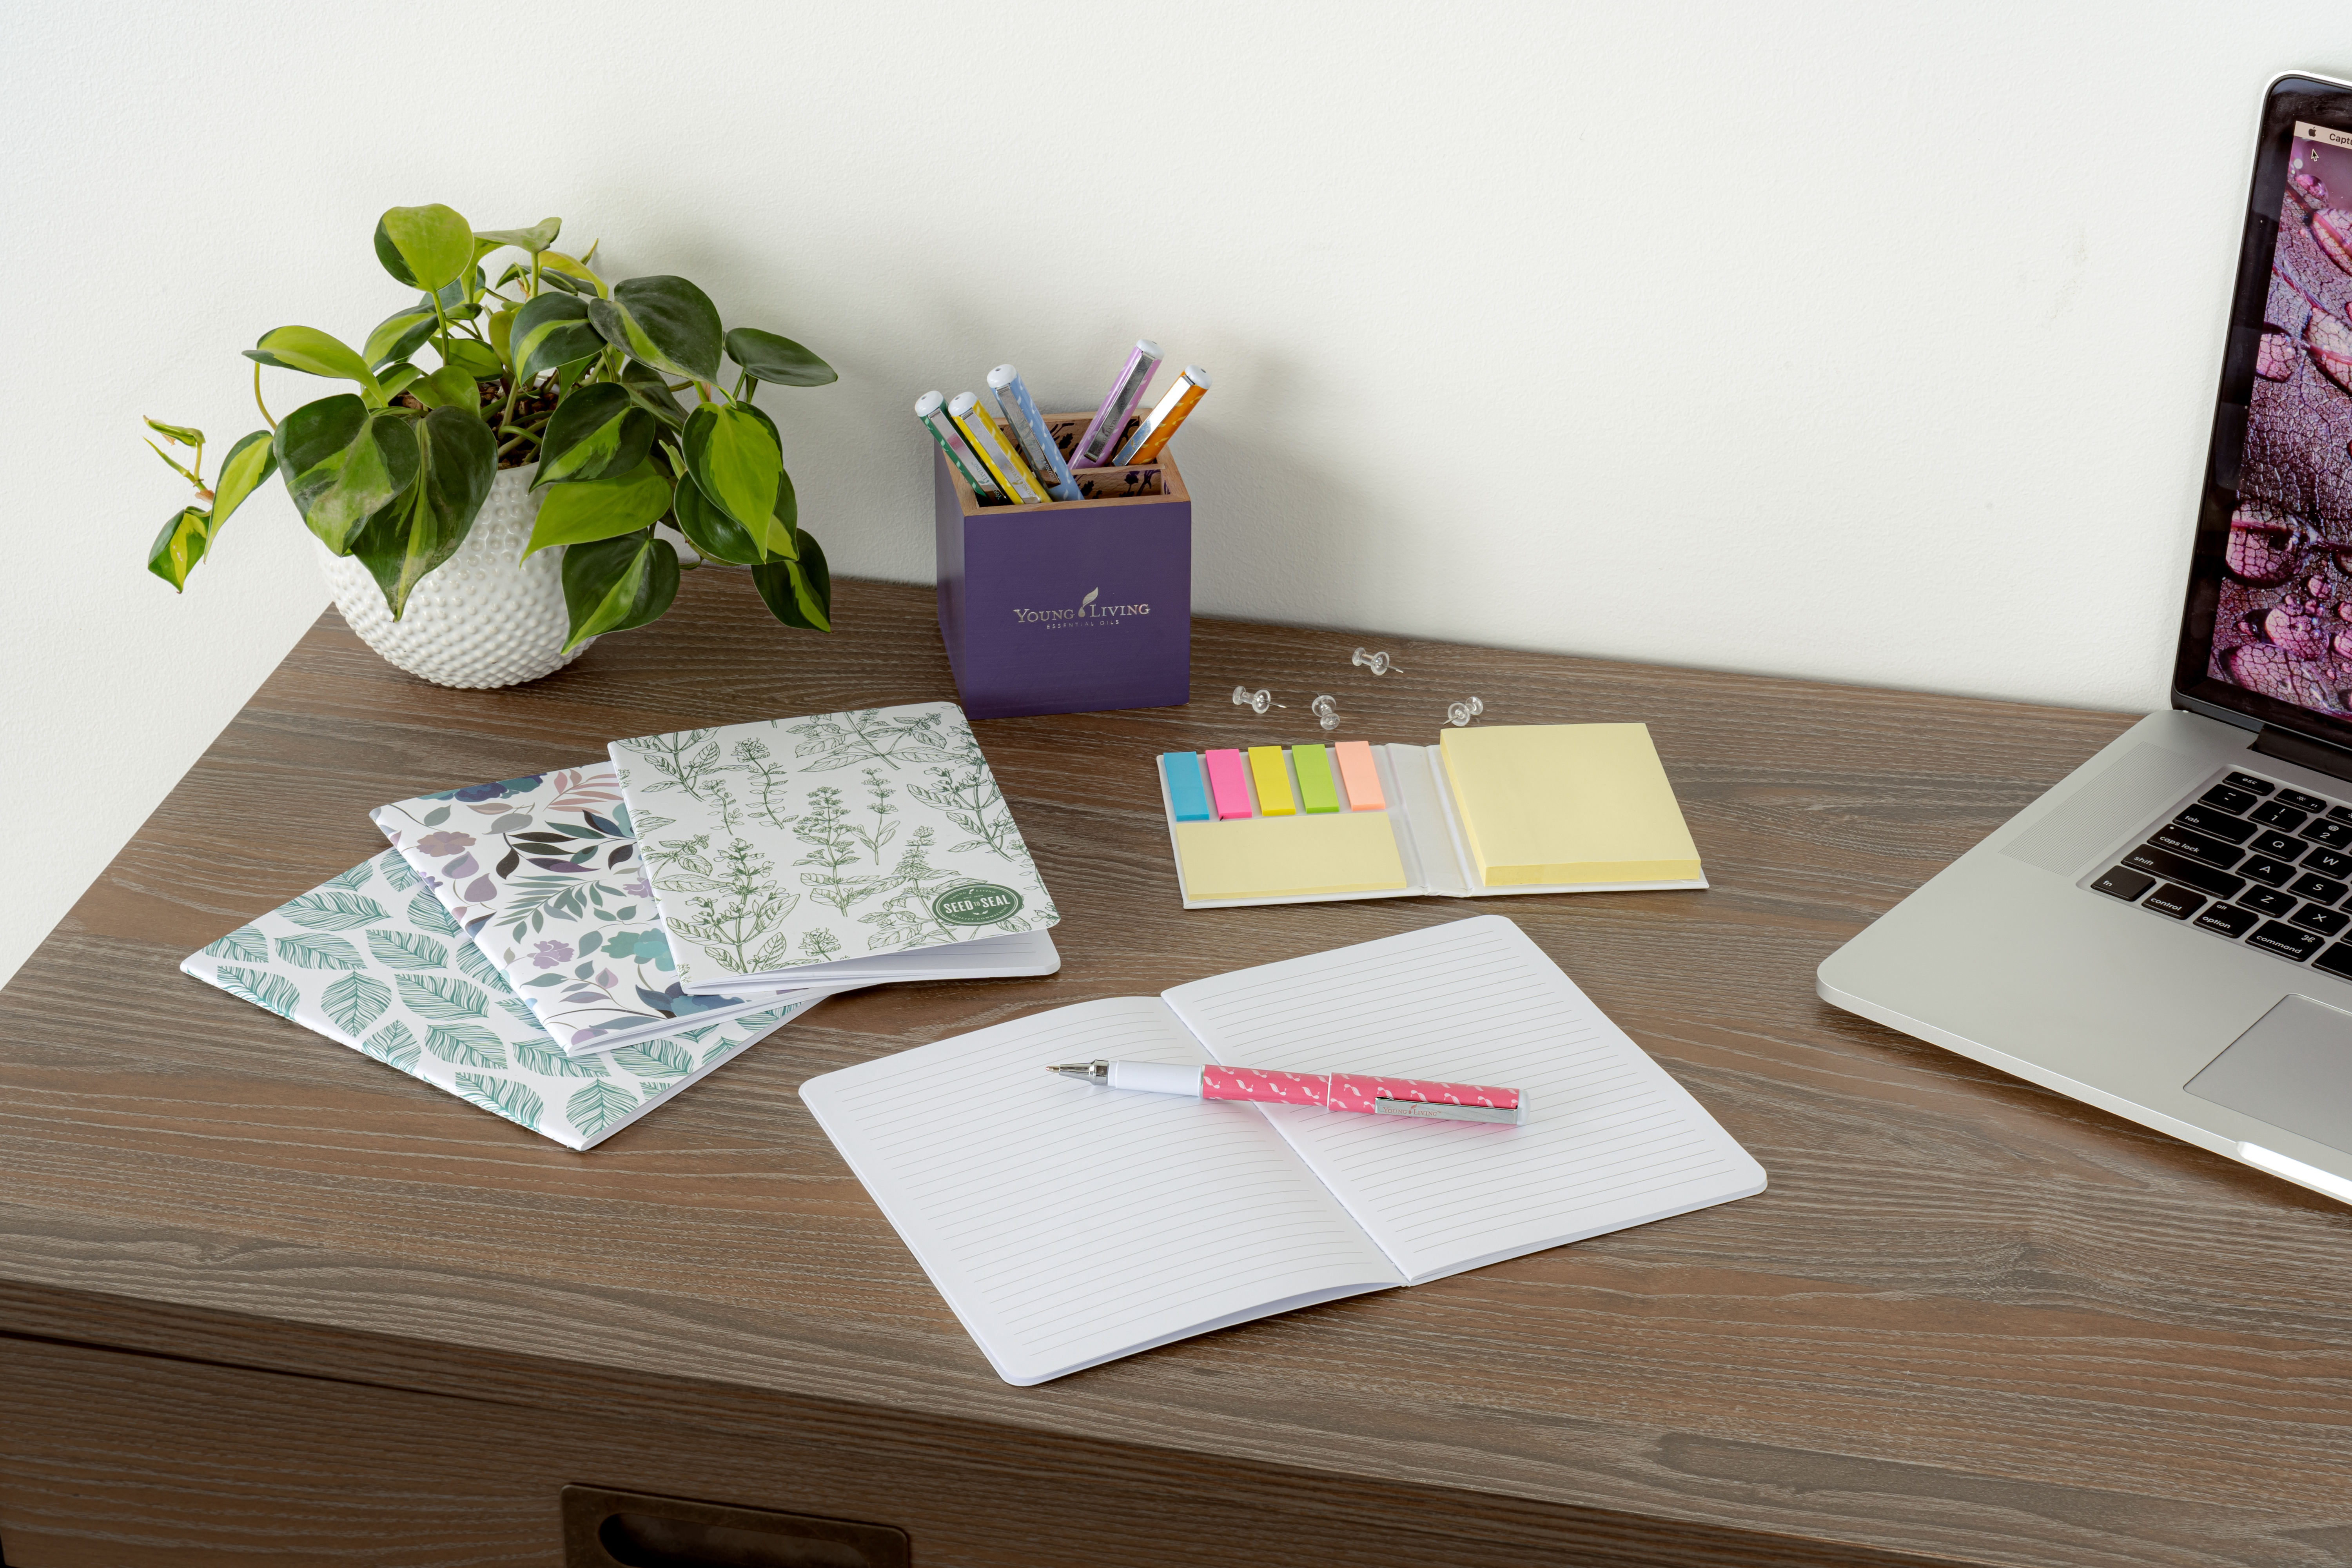 Stocking stuffer ideas: set of notebooks and colorful pens sitting on a desk ready for note taking